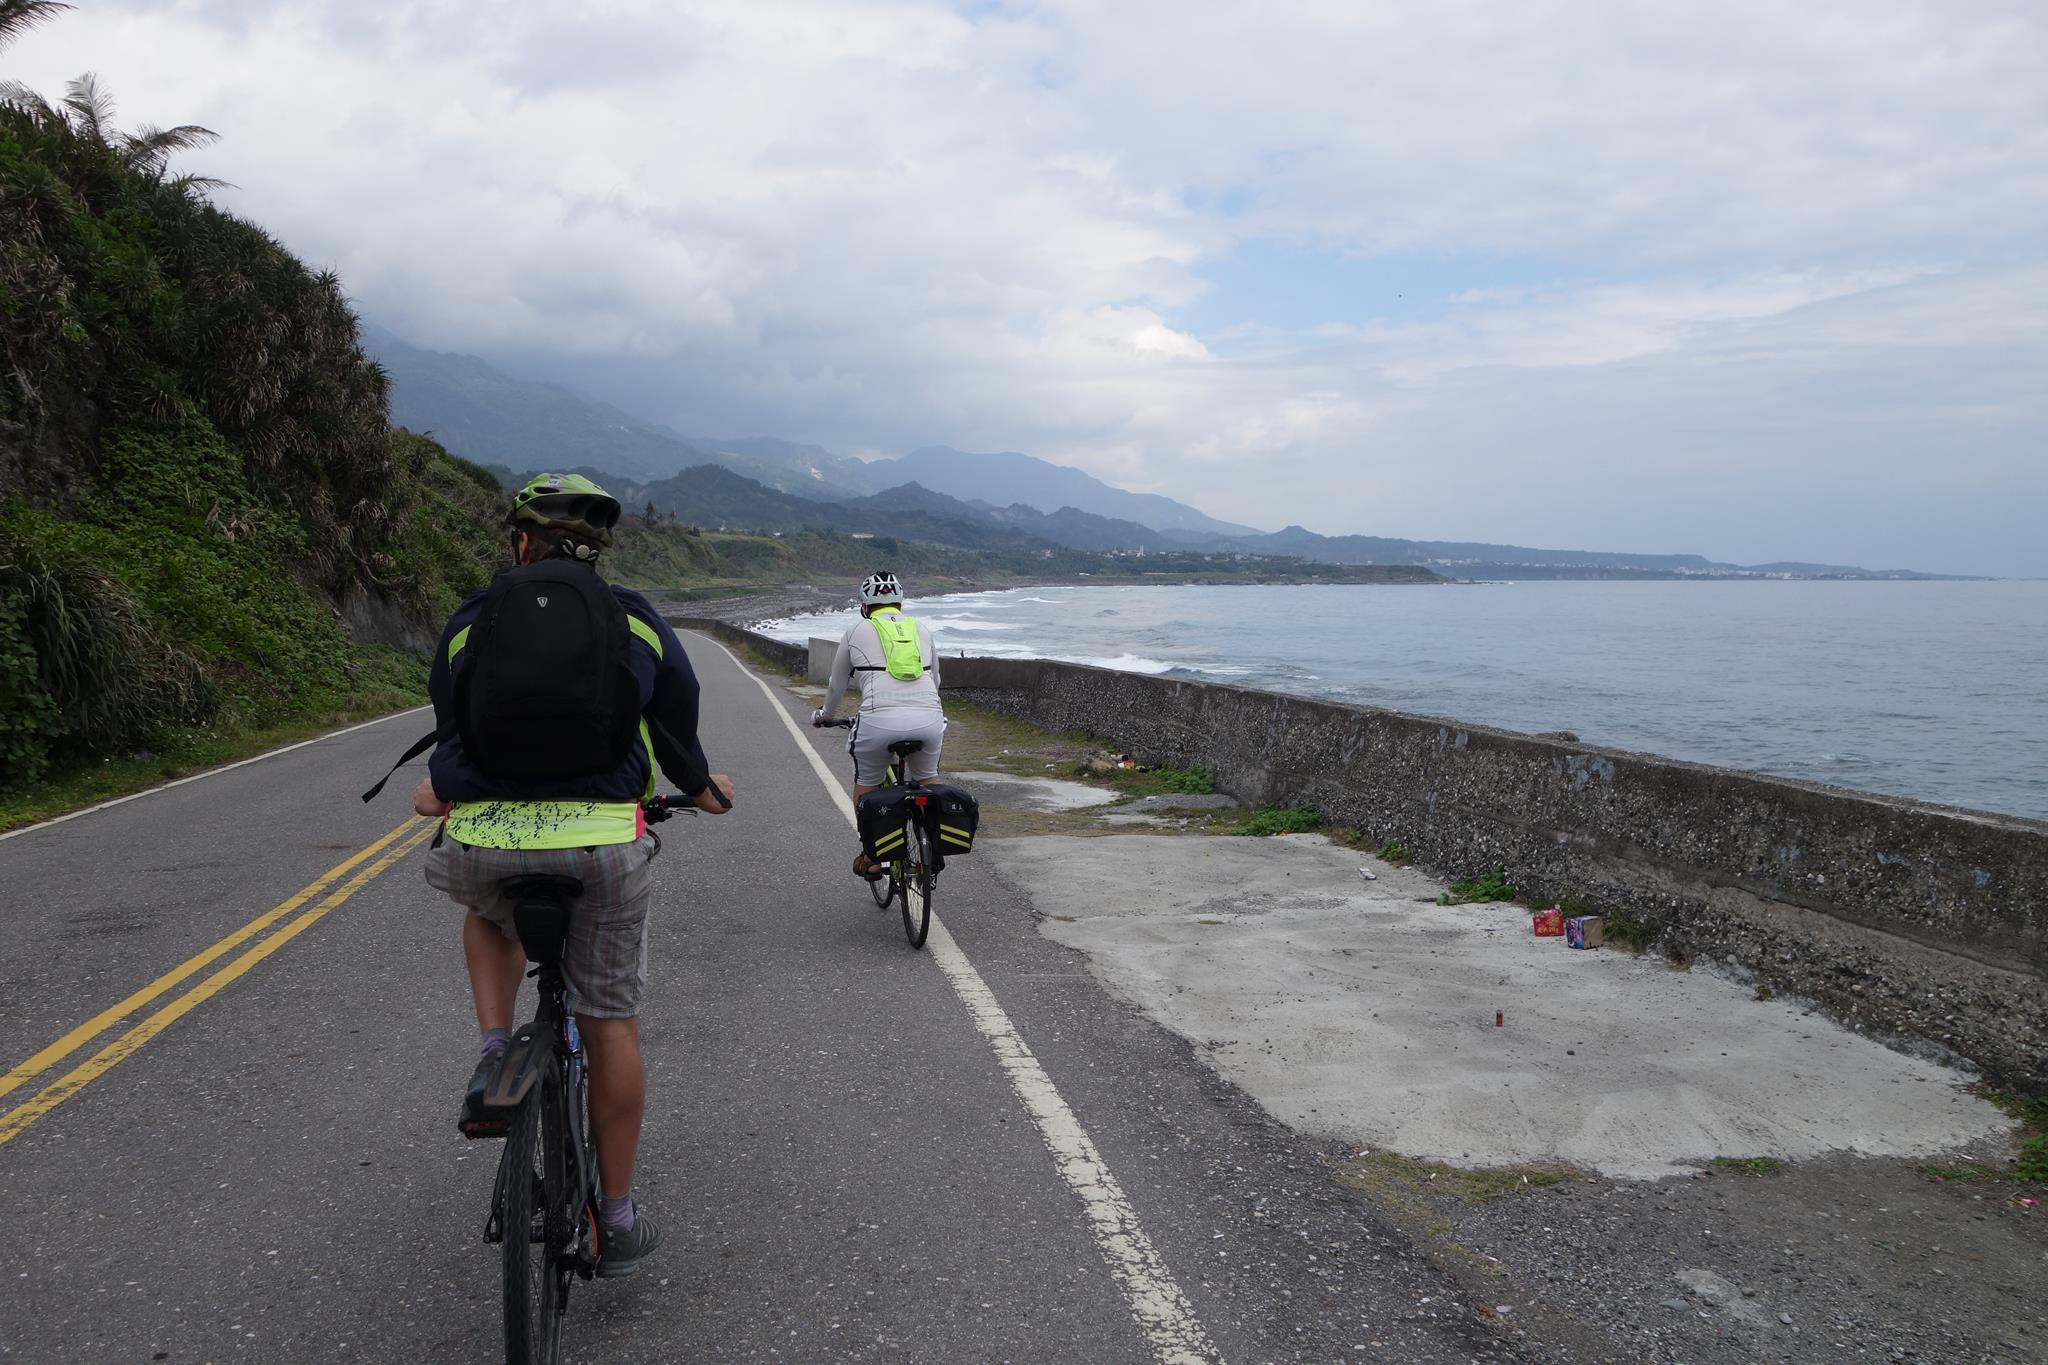 The Taitung 19, Japanese-era road on east coast, now a bike route. (Photo by Michael A. Turton)